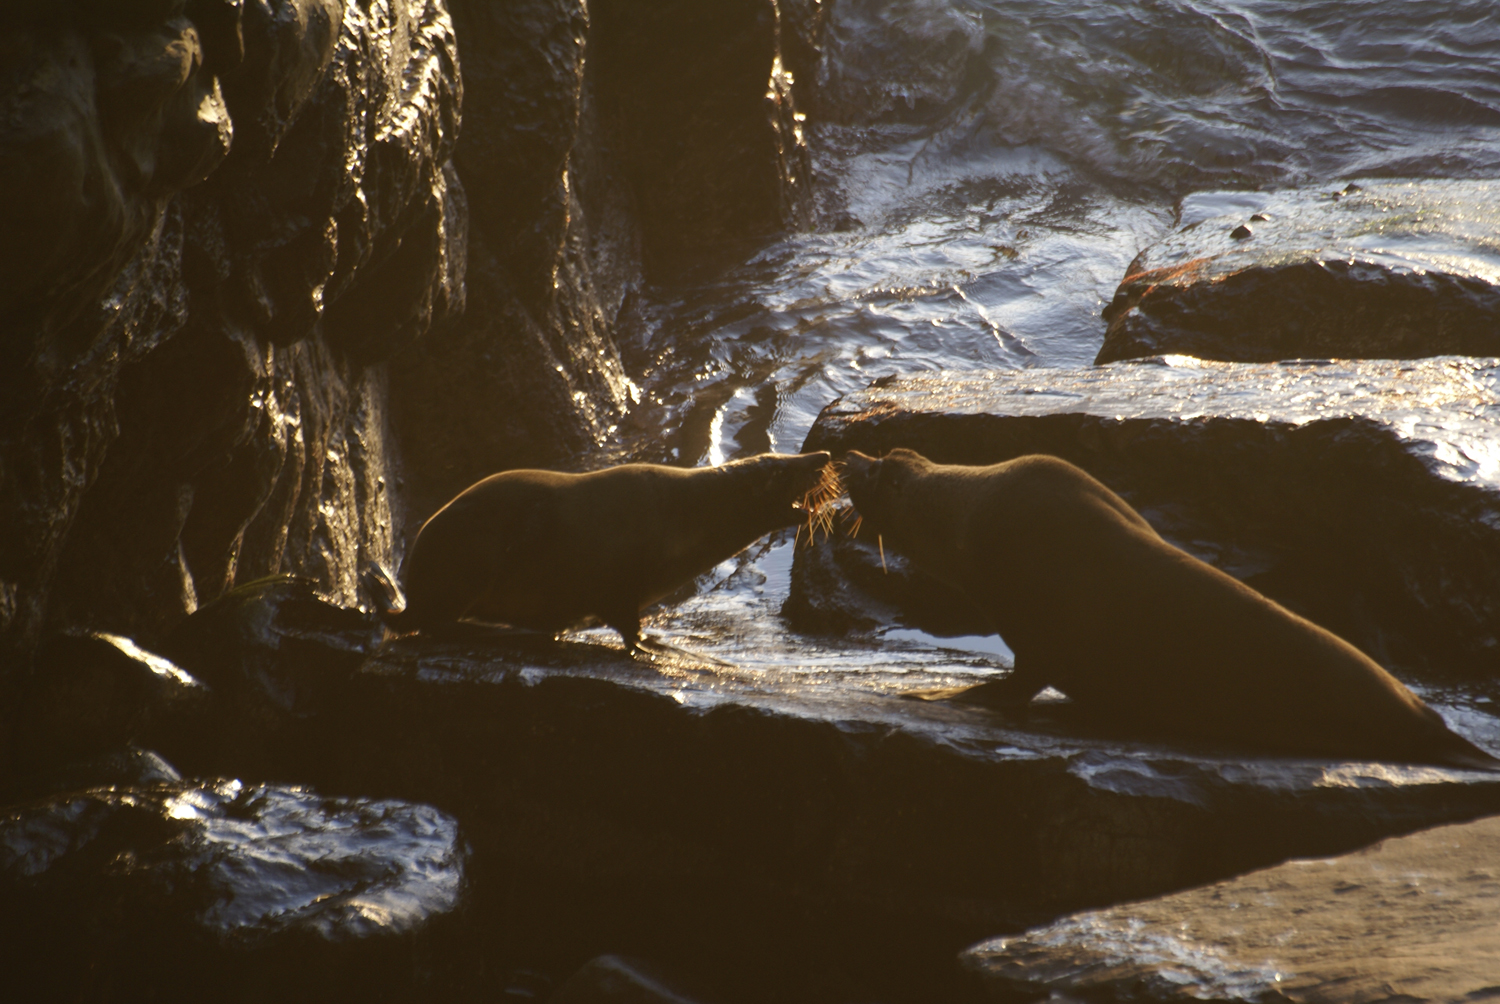 Fur seals at Admiral's arch